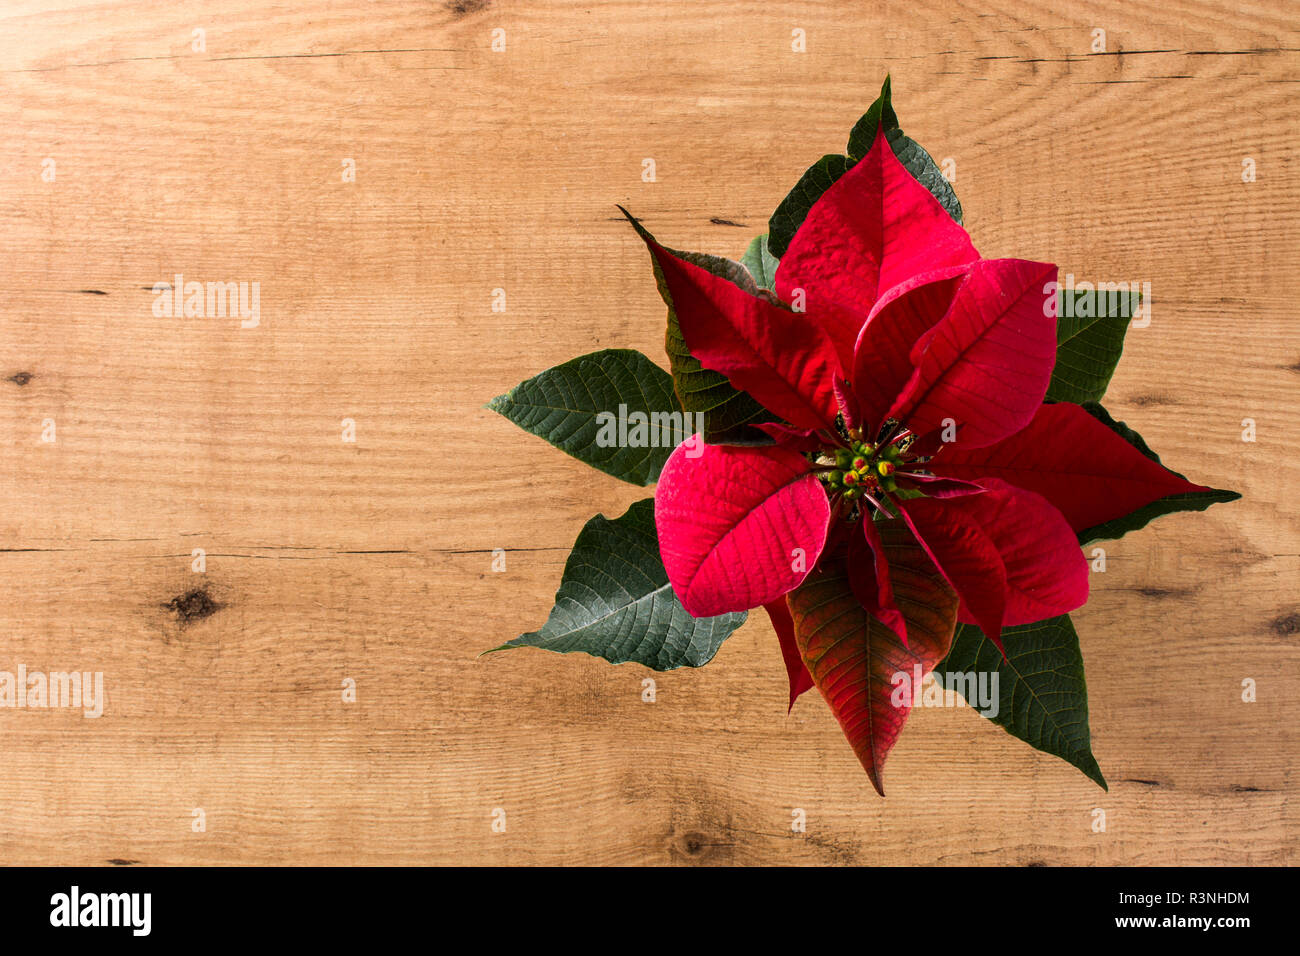 Christmas poinsettia flower on wooden table.Top view. Copyspace - Stock Image